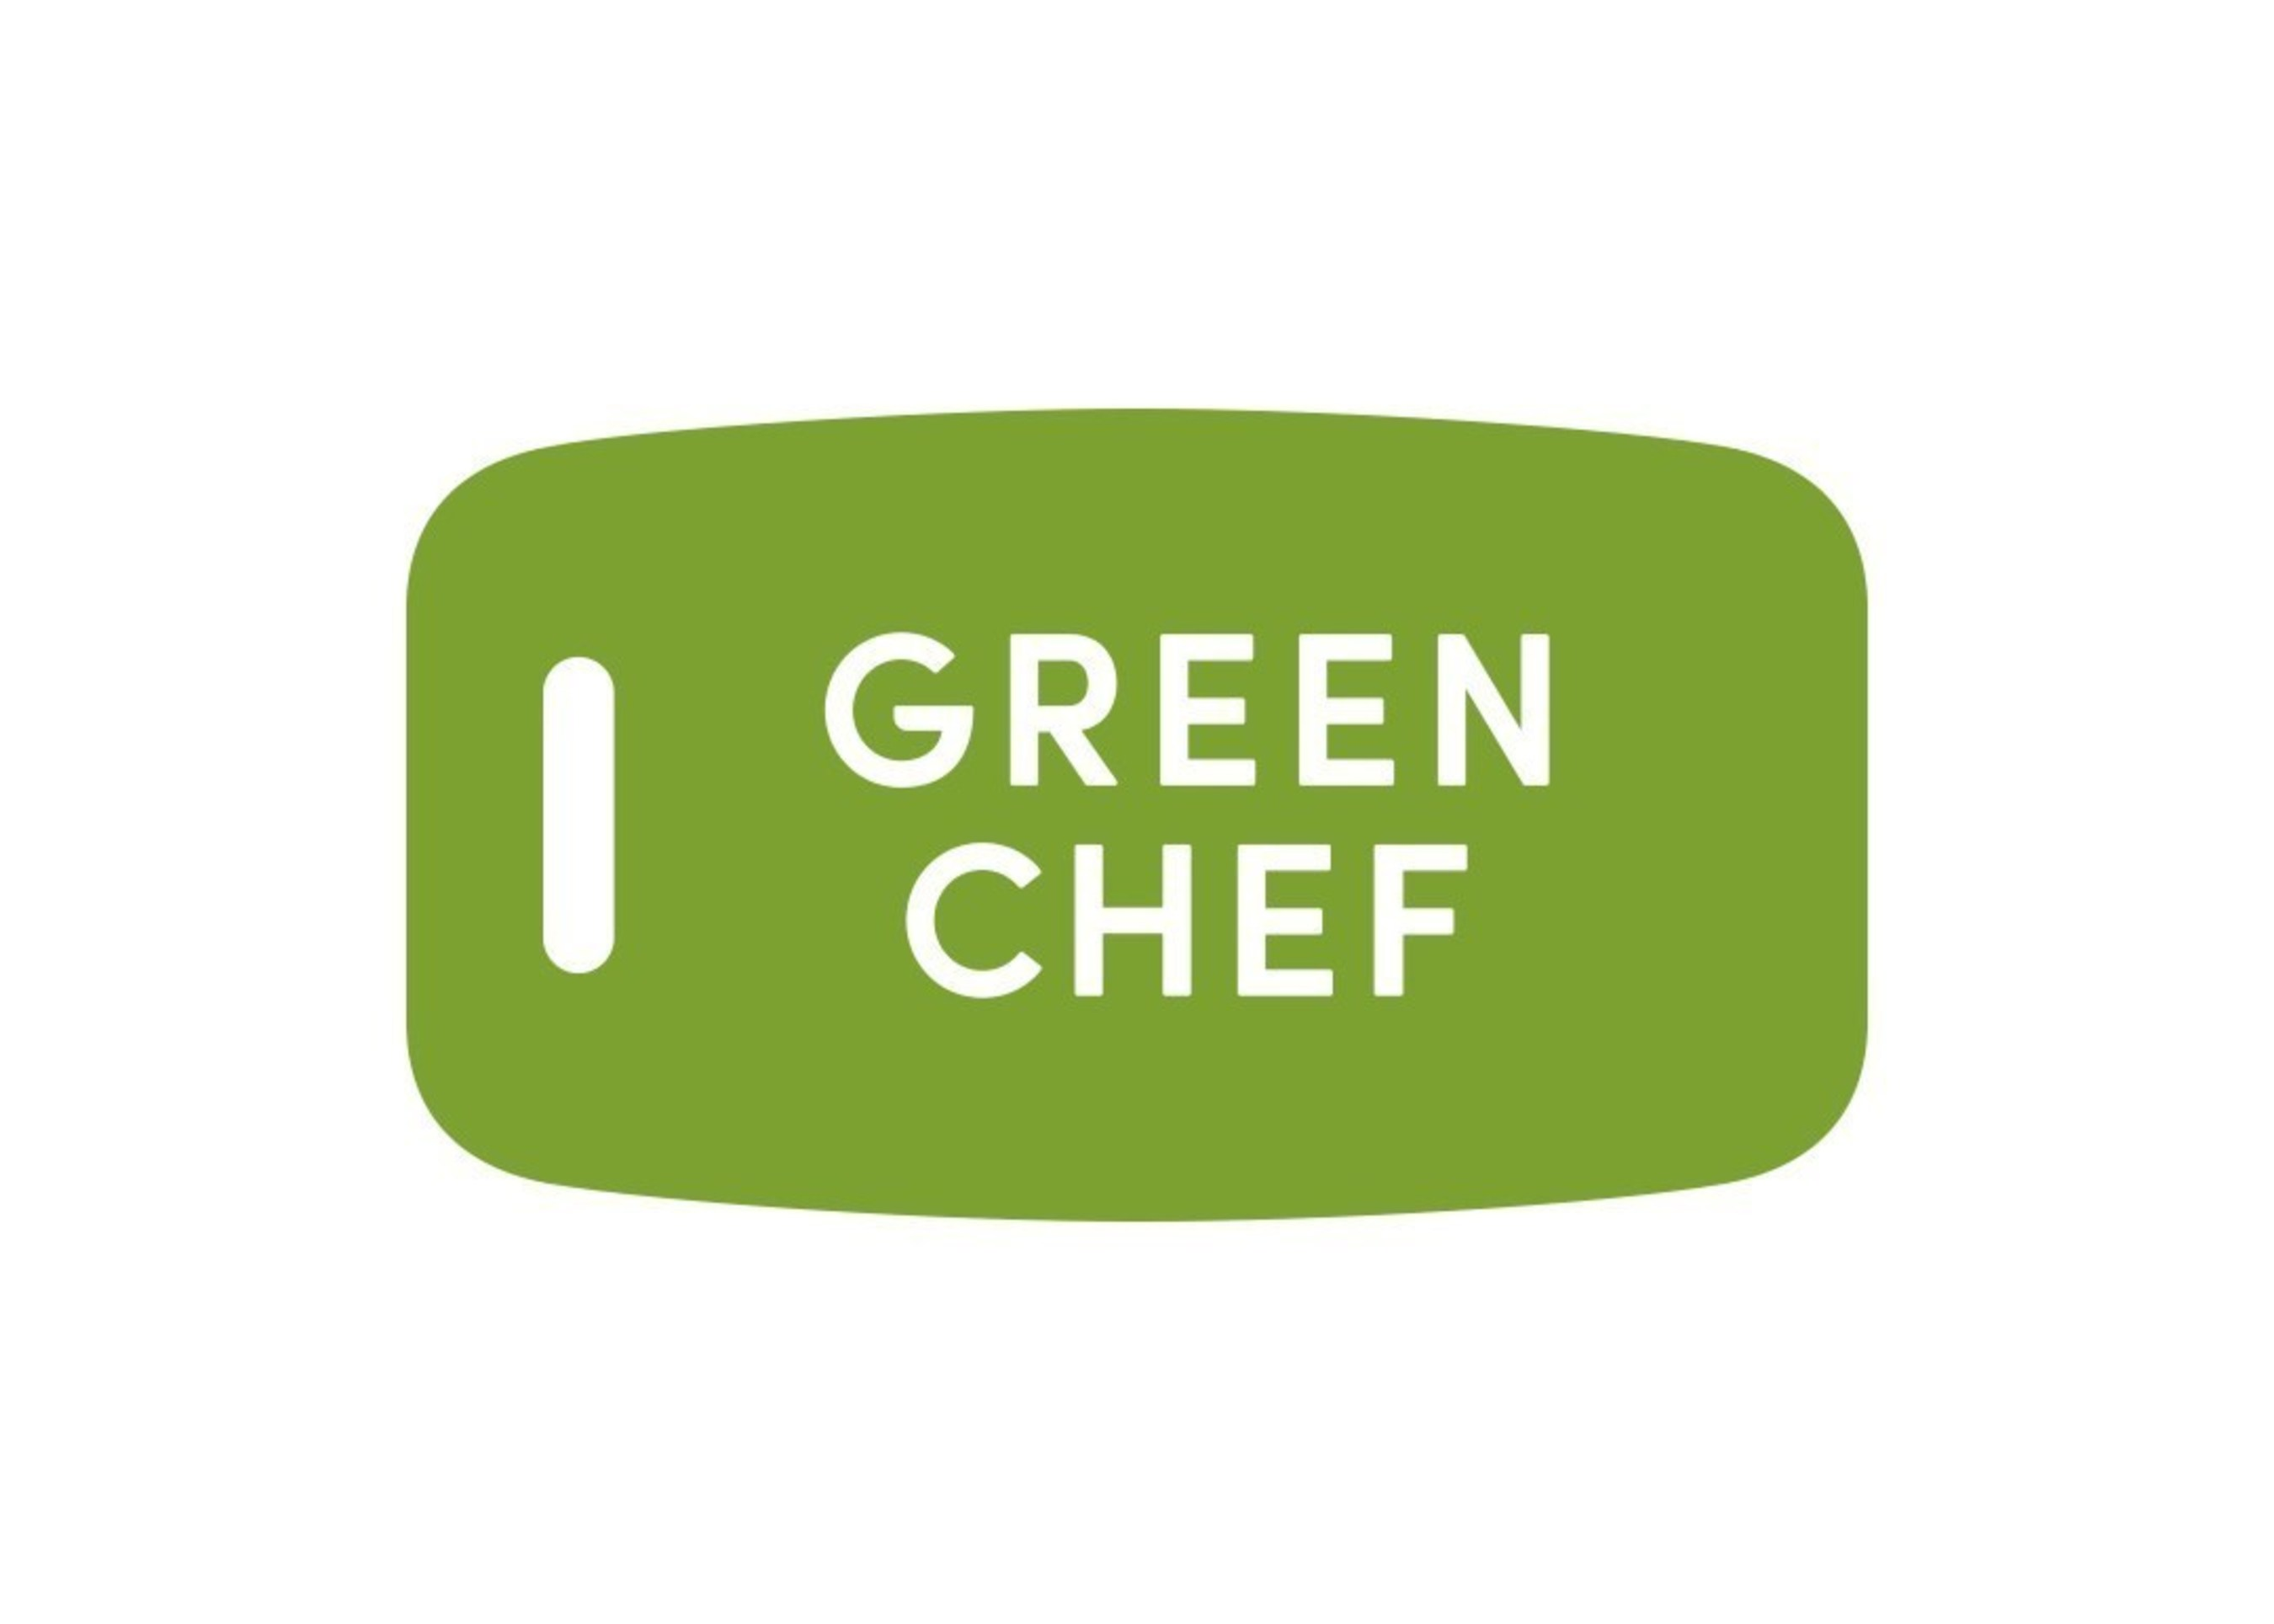 Green Chef Meal Kit Ranking